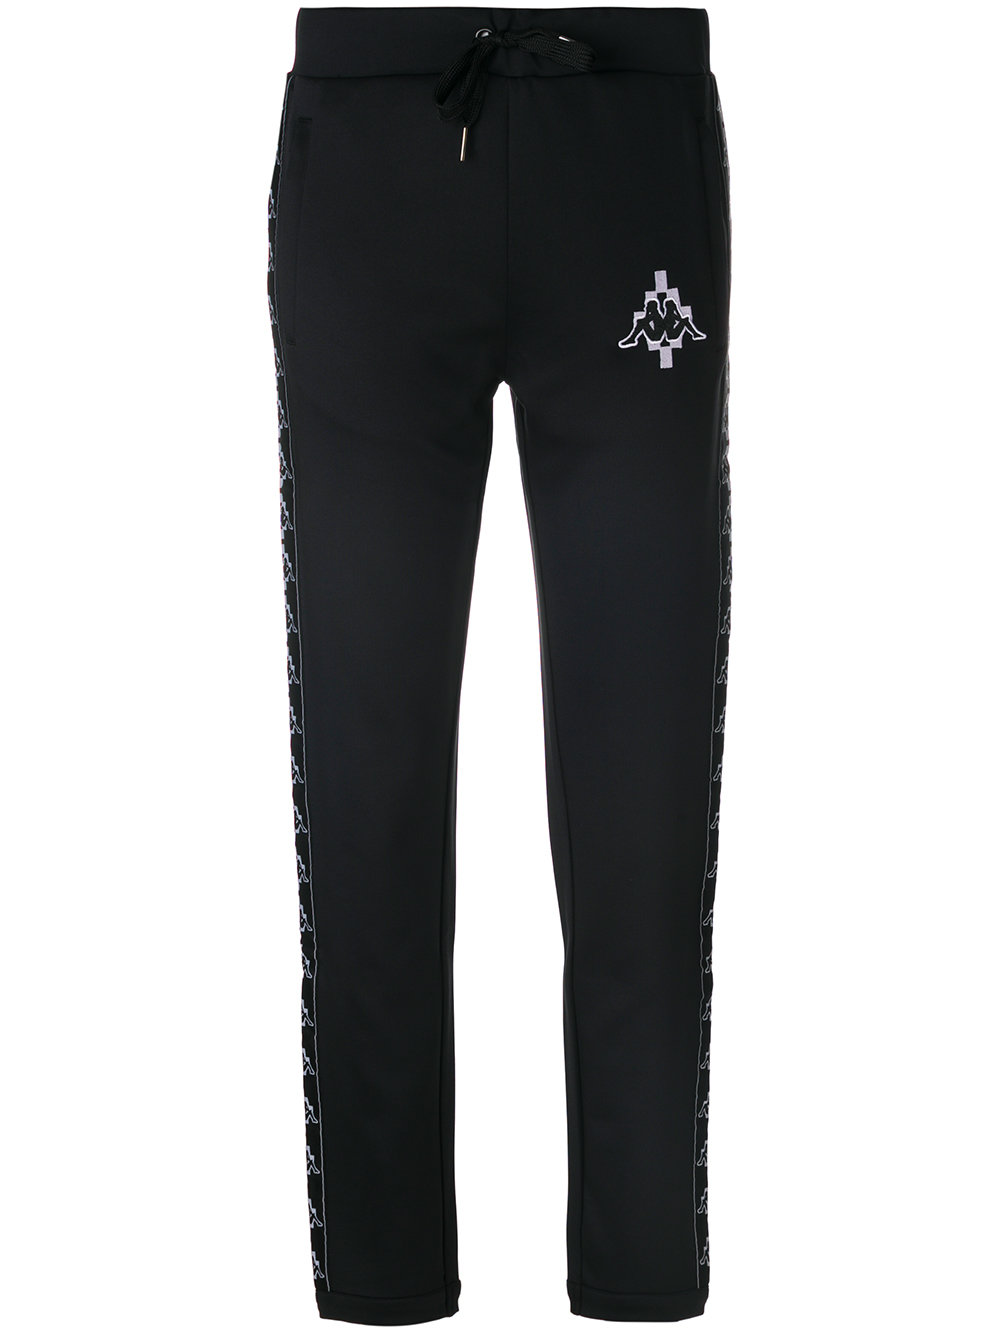 MARCELO BURLON WOMAN KAPPA PANTS BLACK WHITE